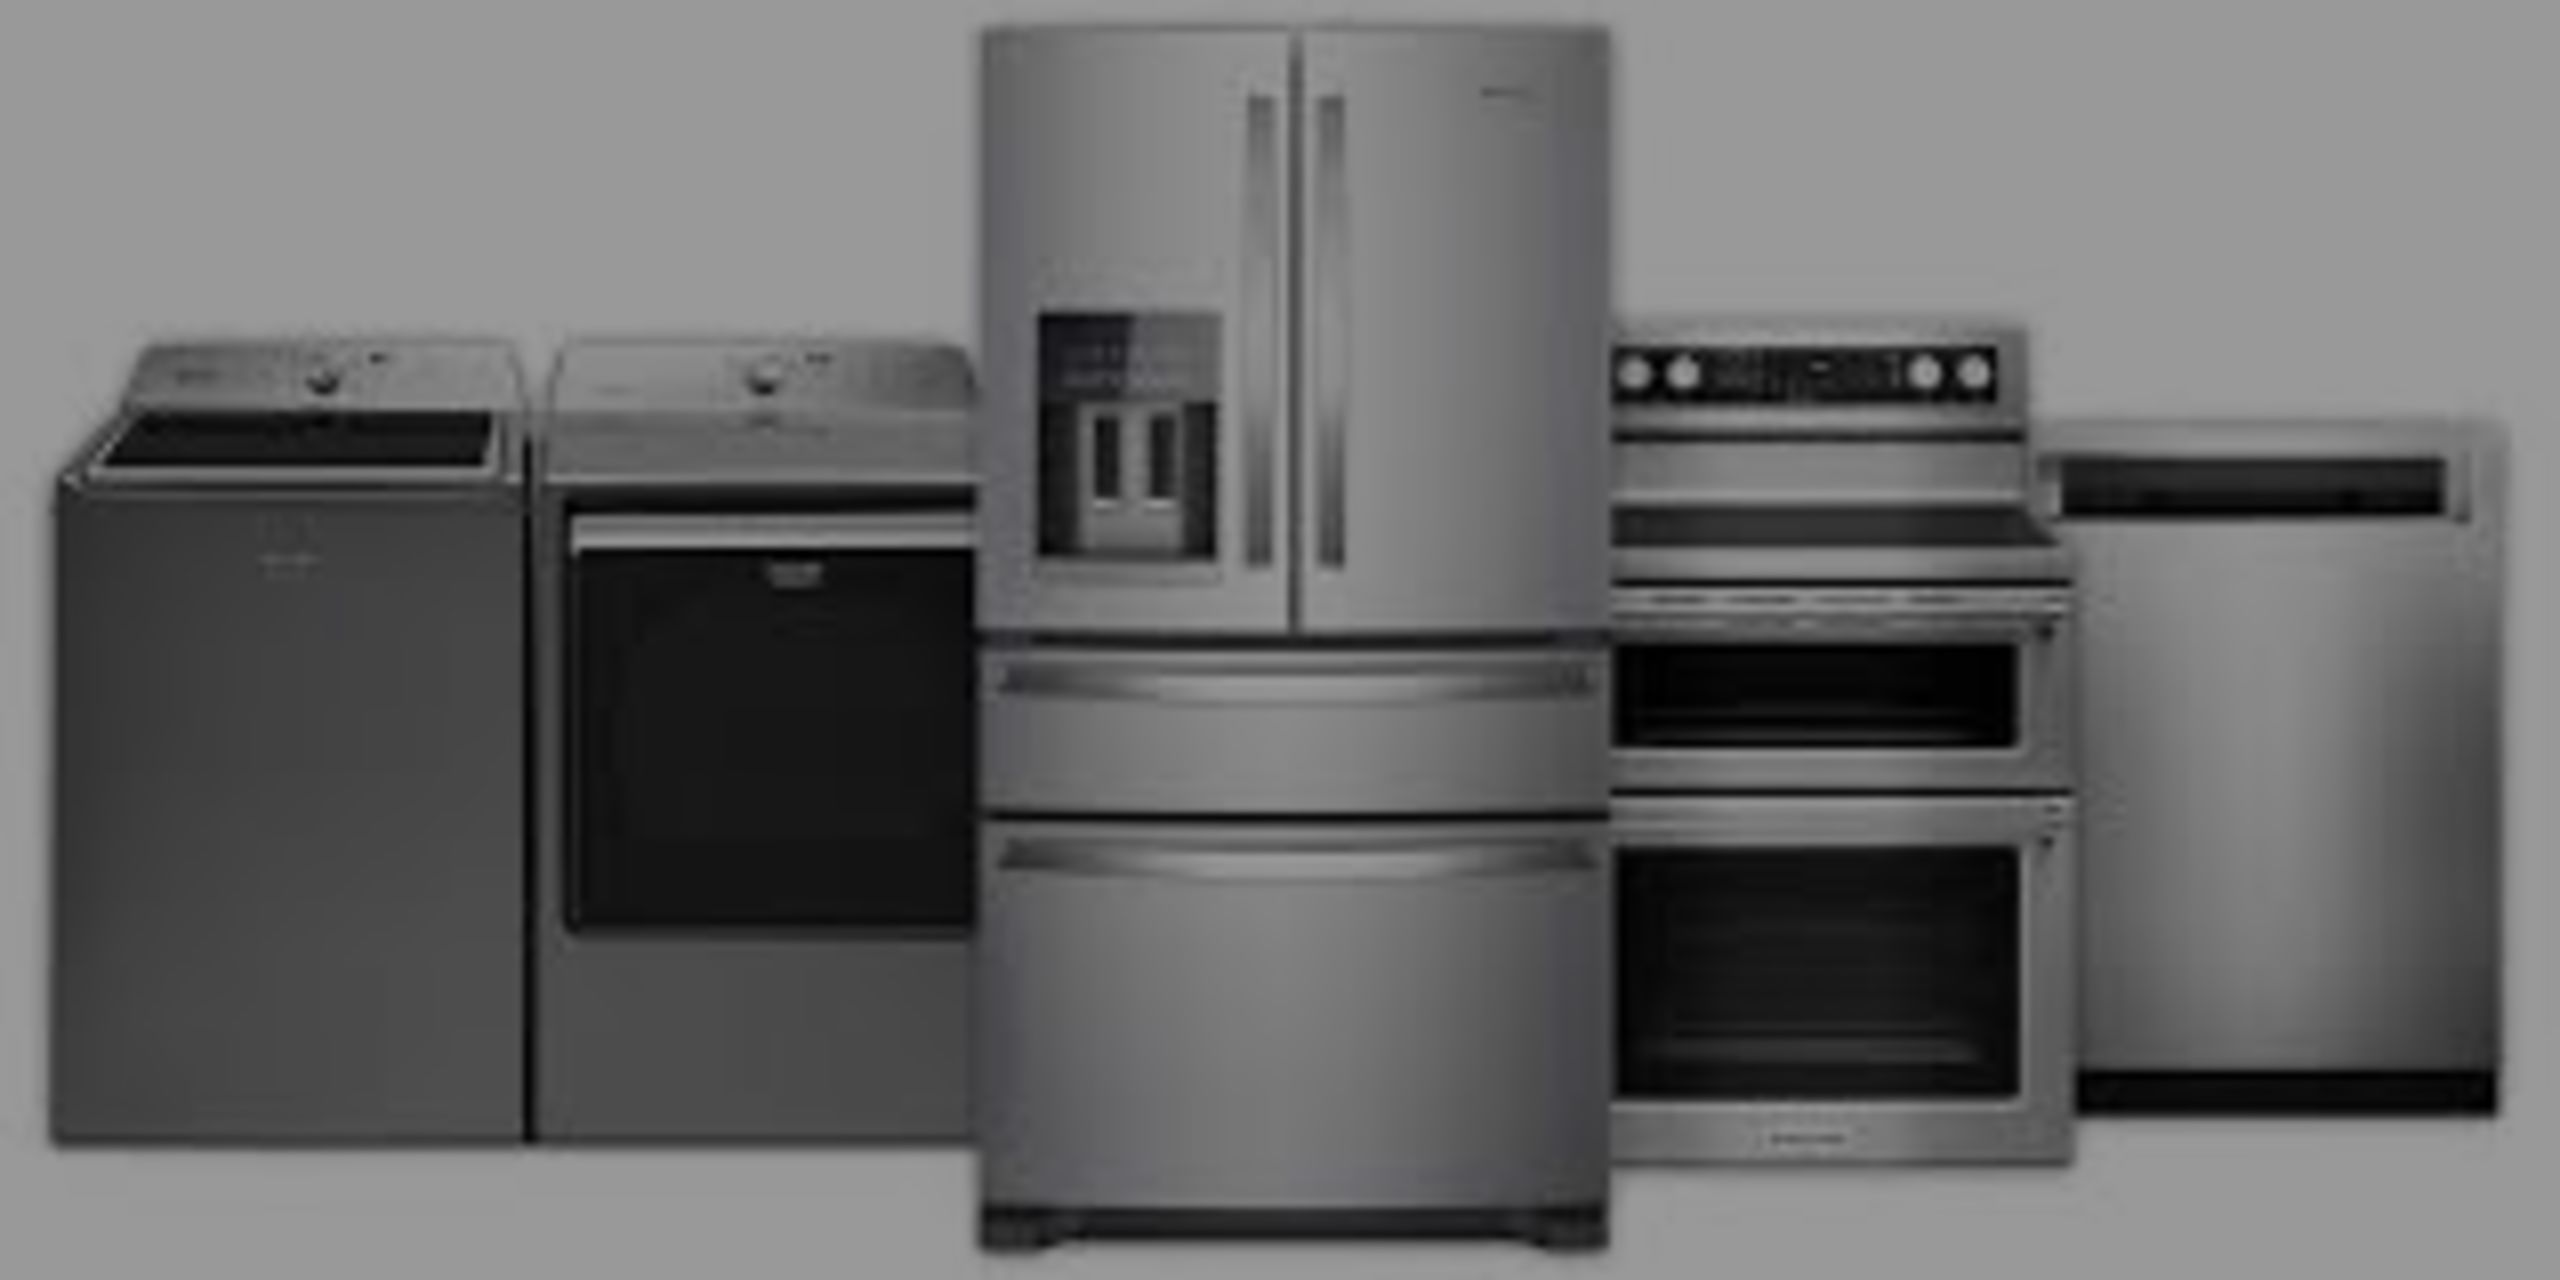 Average Life Span of Your Home's Major Appliances and Systems